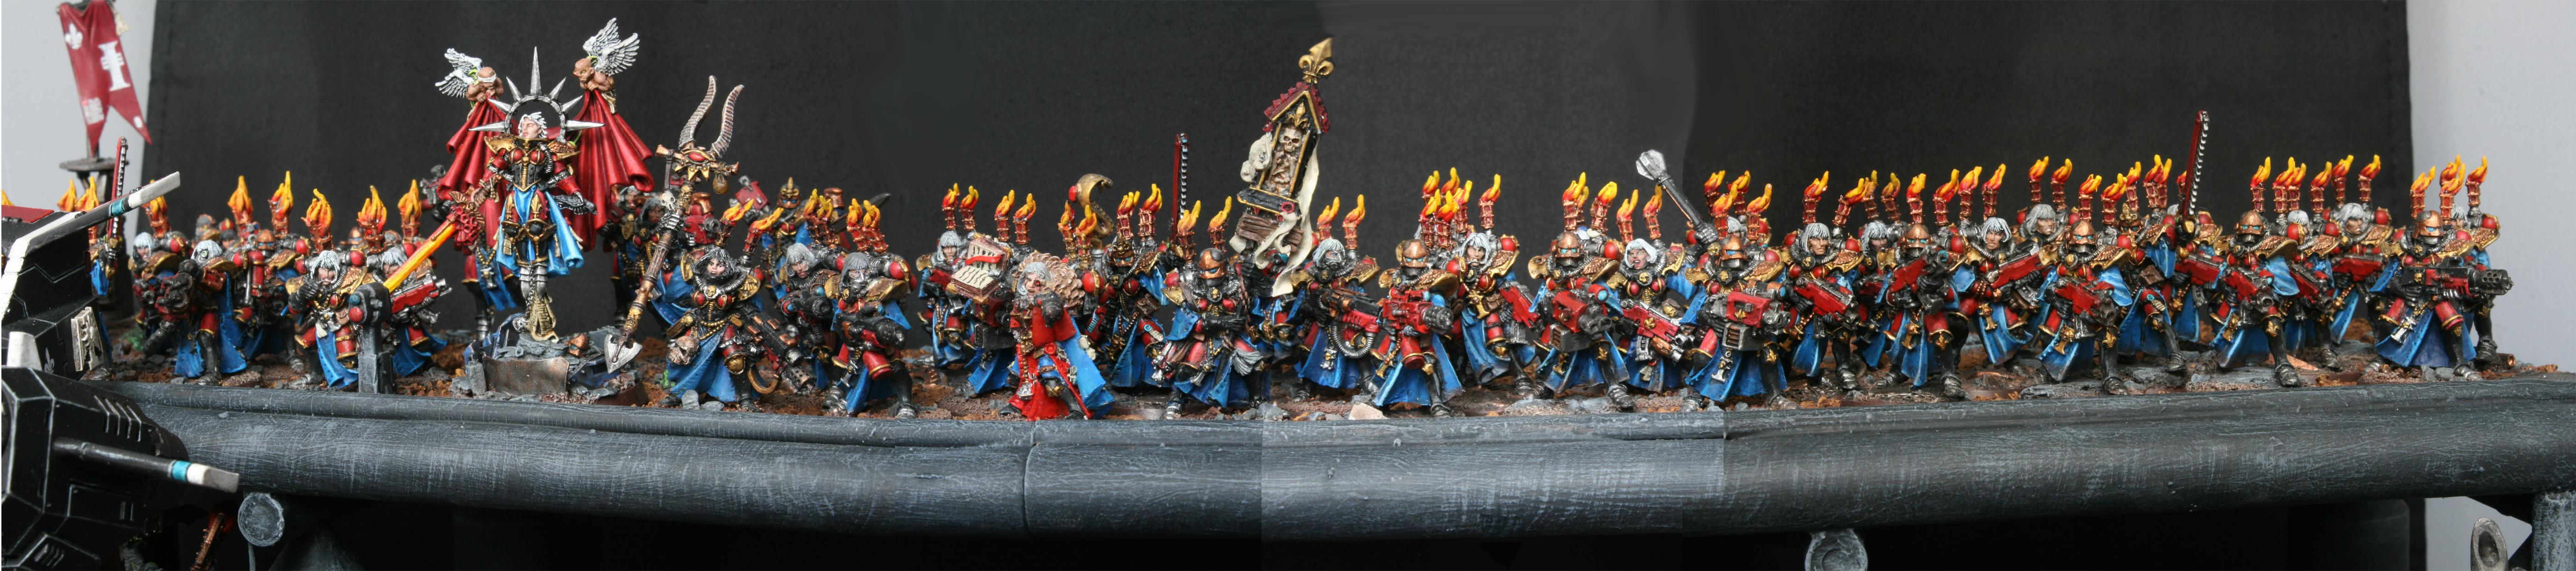 Arkaal, Battle, Bolter, Celestine, Display, Exorcist, Flamer, Hunter, Inquisition, Meltagun, Repressor, Rhino, Sister, Storm, Talon, Tray, Witch